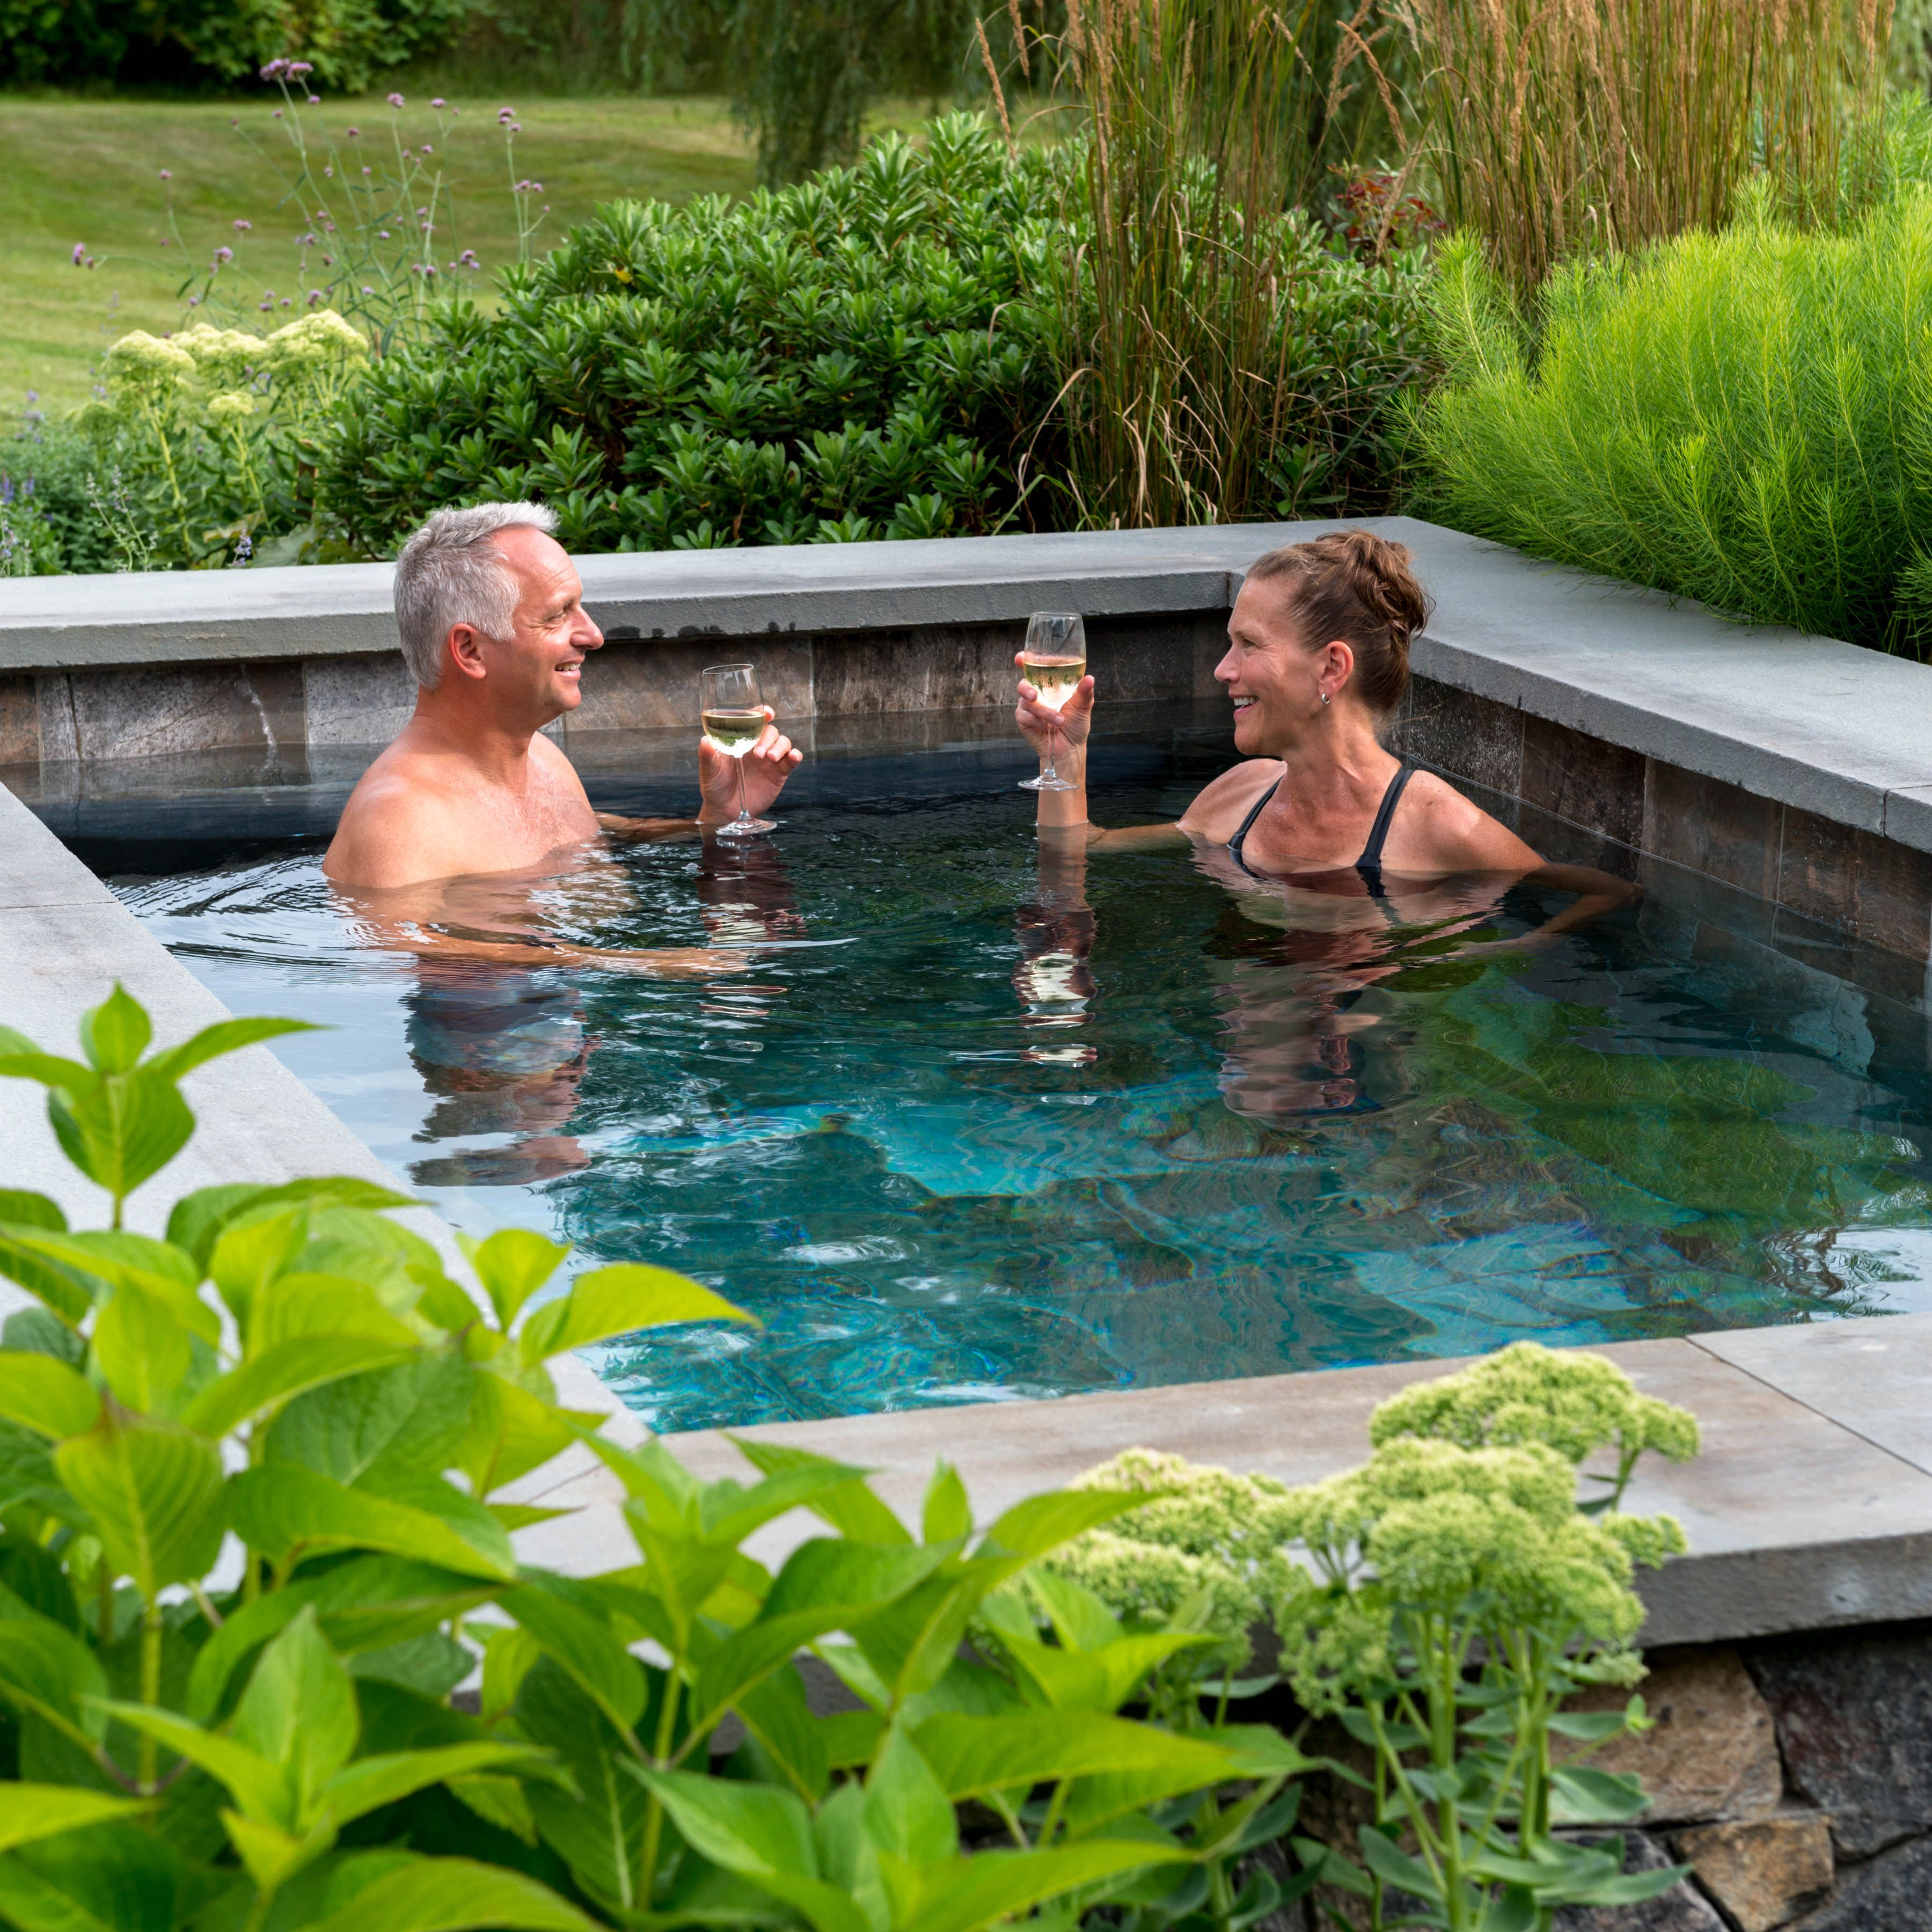 Clink Enjoy A Relaxing Evening In Soake Pool The Comfort Of Your Own Backyard Photo By John W Hession